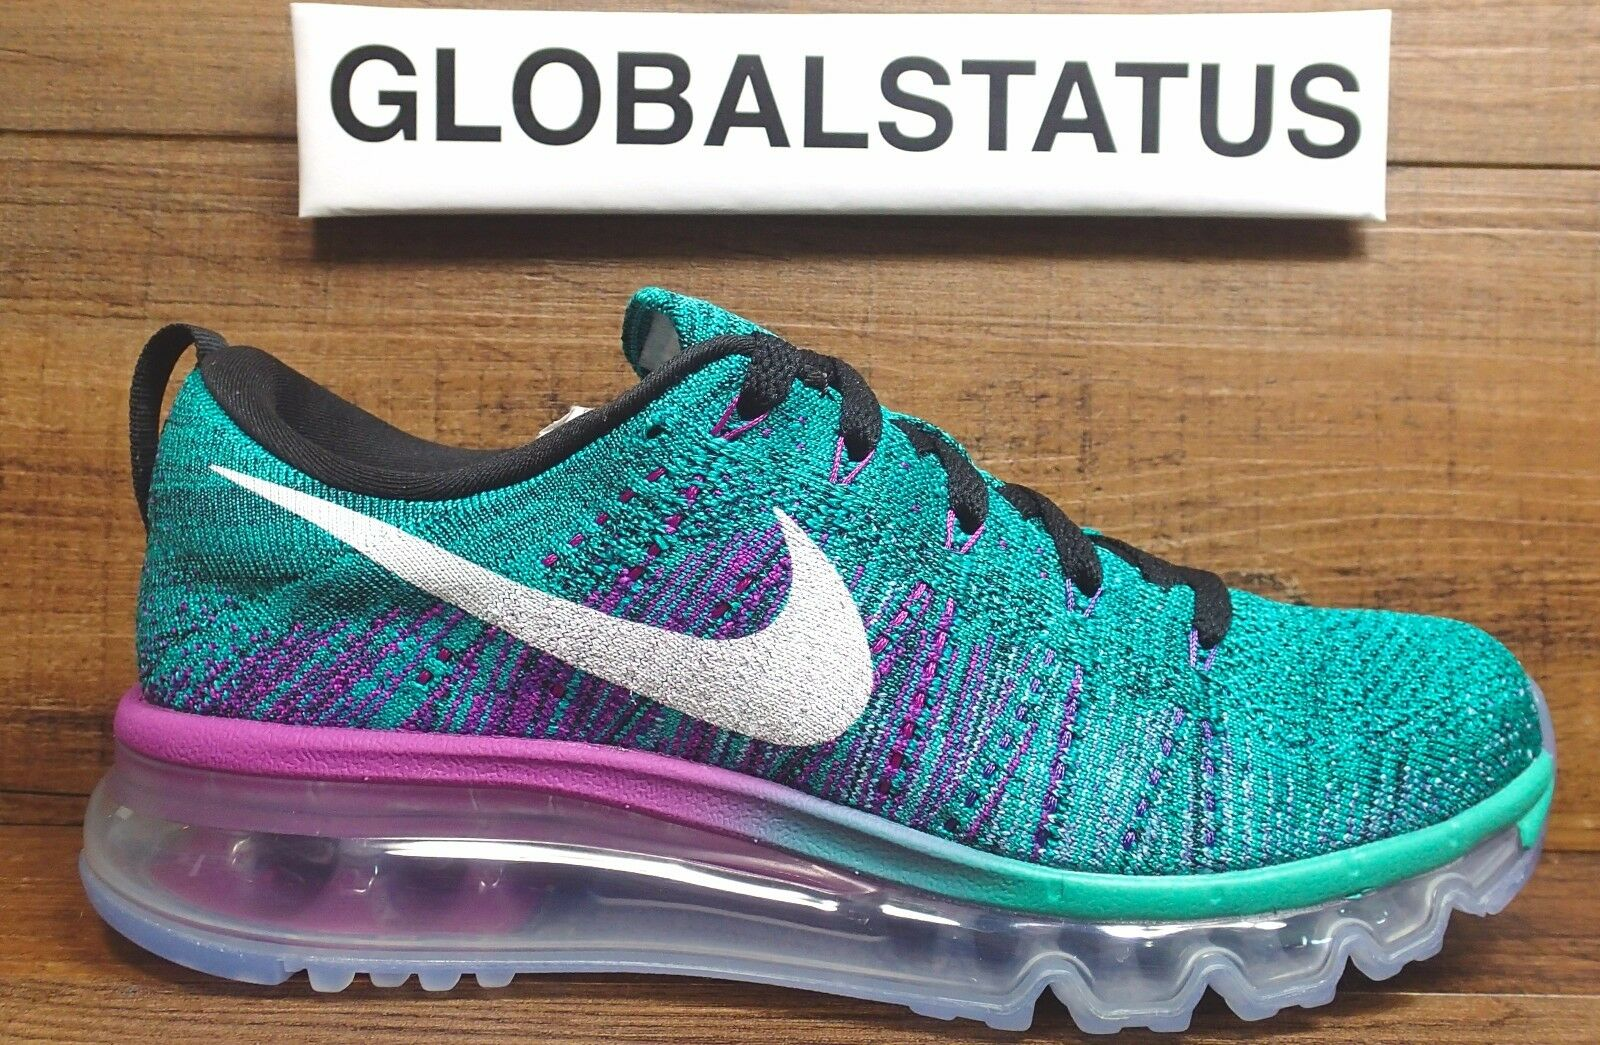 NIKE WOMEN FLYKNIT MAX CLEAR JADE HYPER VOLT BLACK SHOES 620659 013 SIZE 7.5